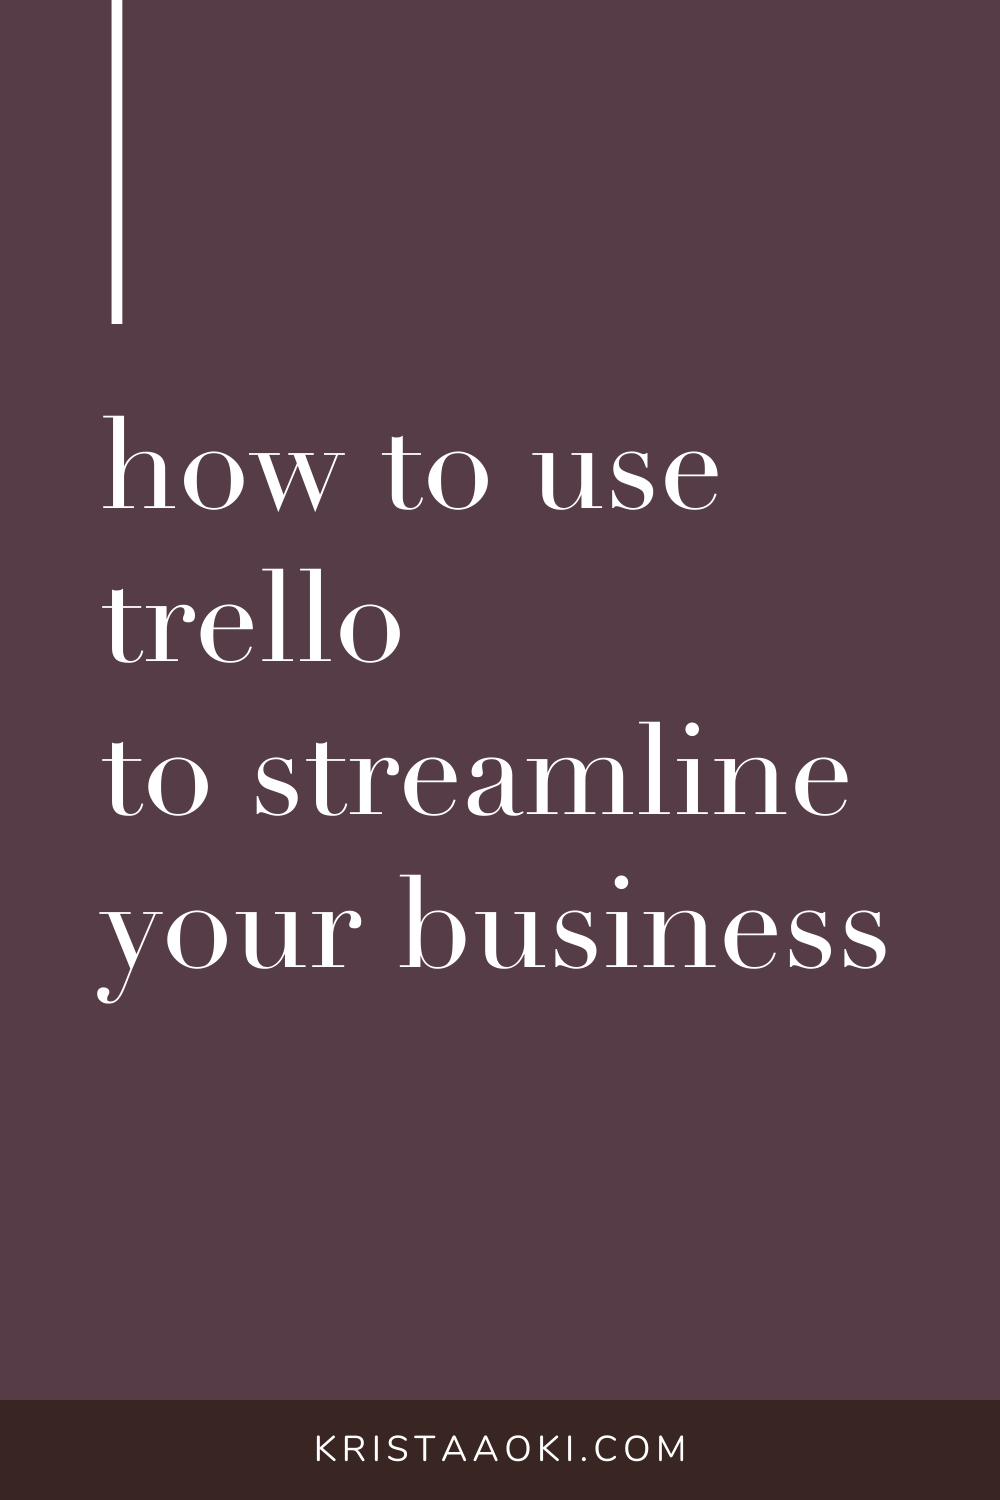 If you love getting organized, you'll love these tips on how to use Trello project management to streamline your online business. Plan your blog posts, manage your content & publishing calendar...and never miss a beat with your ideas or your to-do list. productivity tips, planning, small business organization, small biz, freelancer, freelance tips, work from home | Krista Aoki at KristaAoki.com